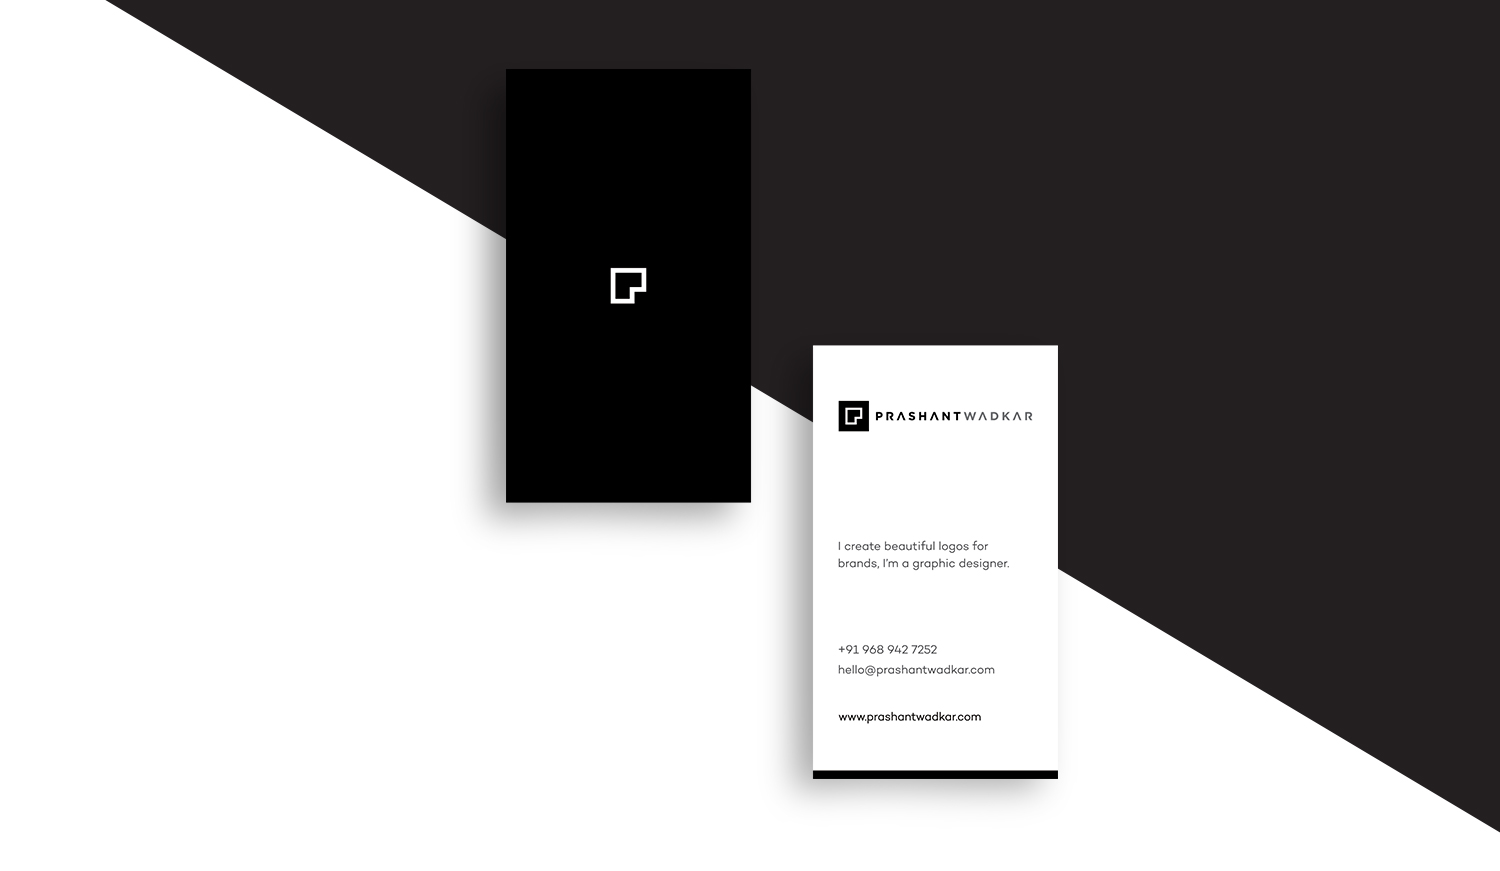 Business card of Prashant Wadkar